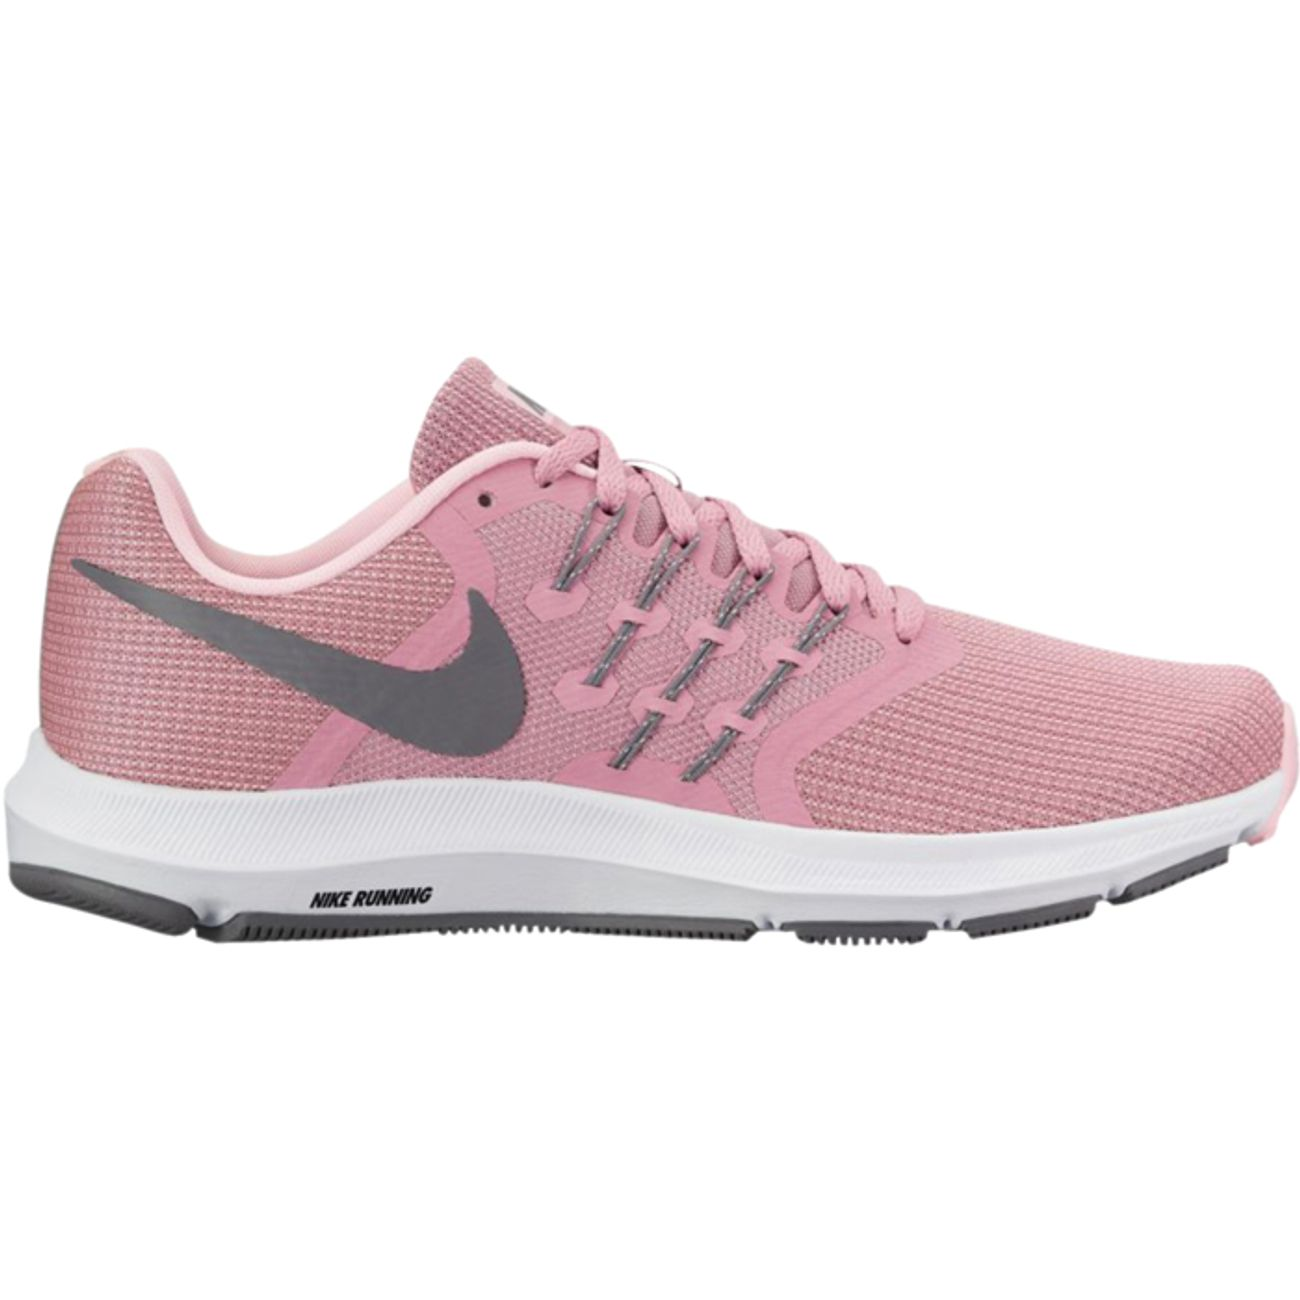 separation shoes 22053 41d83 CHAUSSURES BASSES femme NIKE BTE RUN SWIFT nike free run go sport